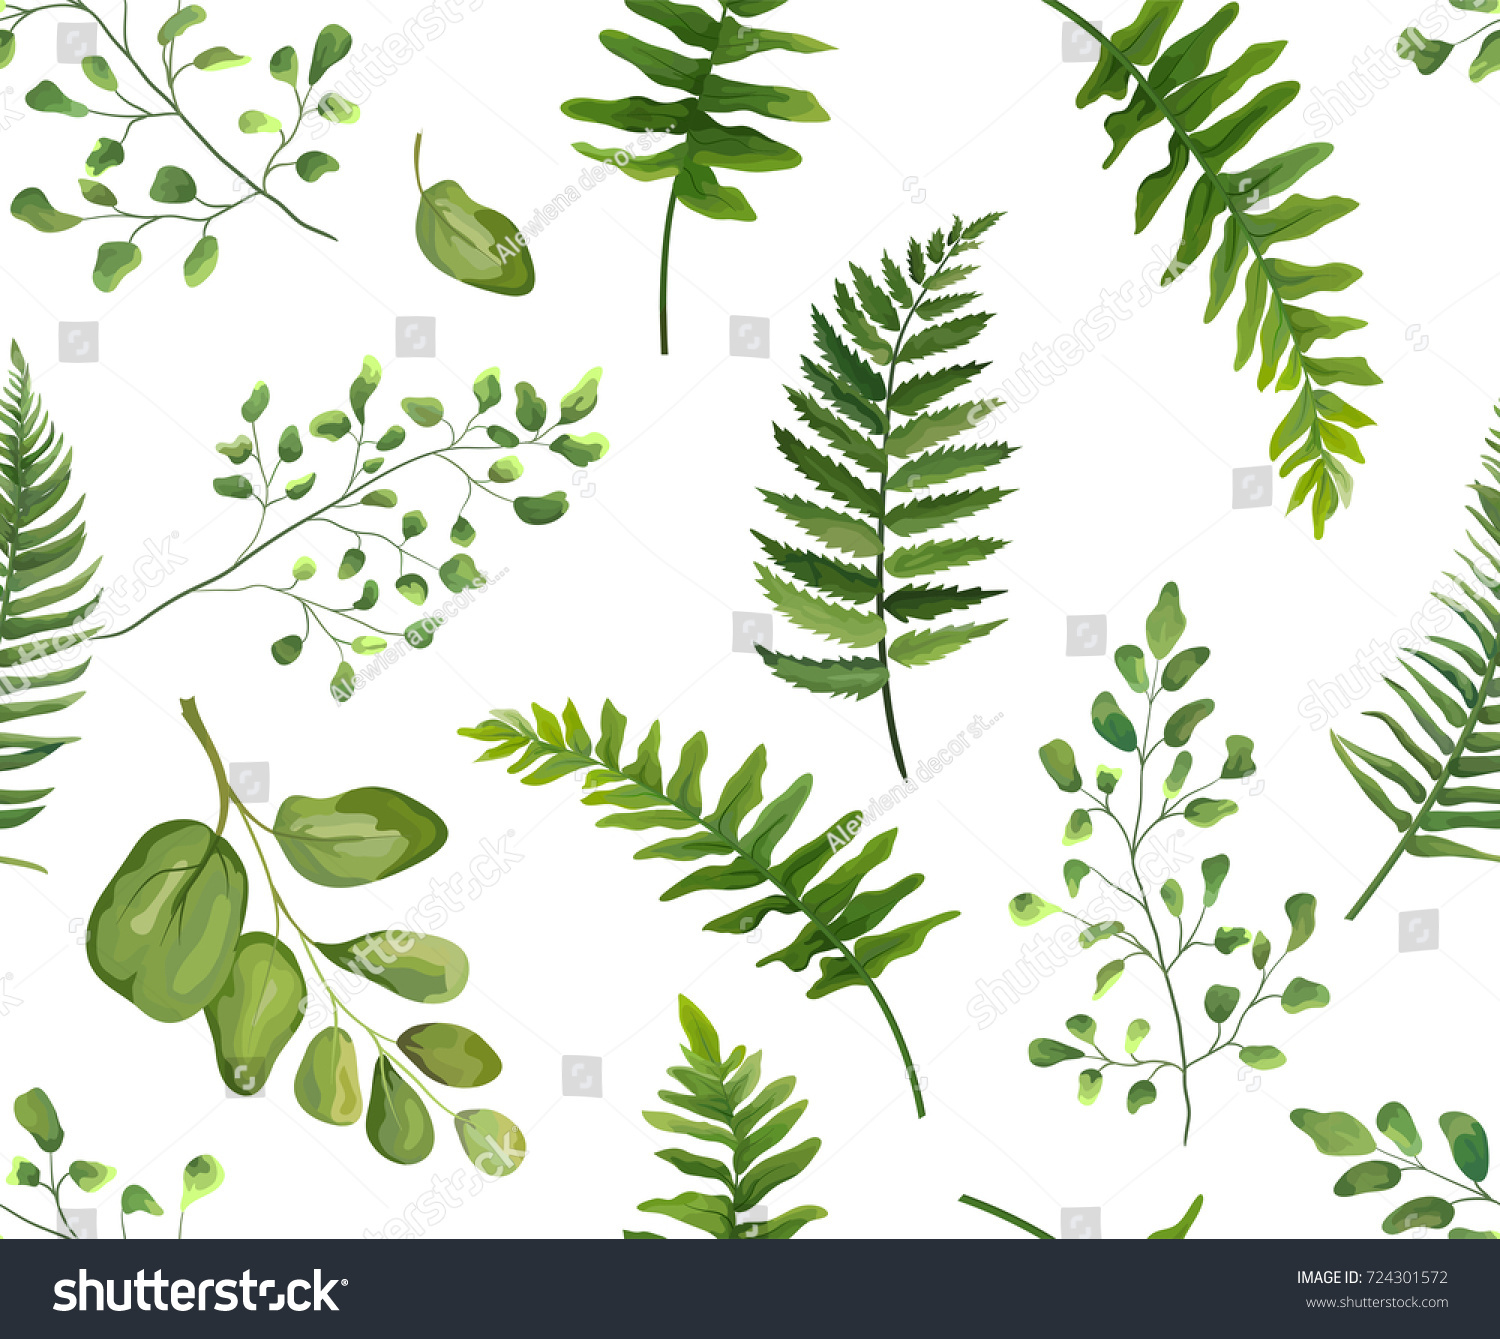 Seamless greenery green leaves botanical rustic stock for Watercolor greenery